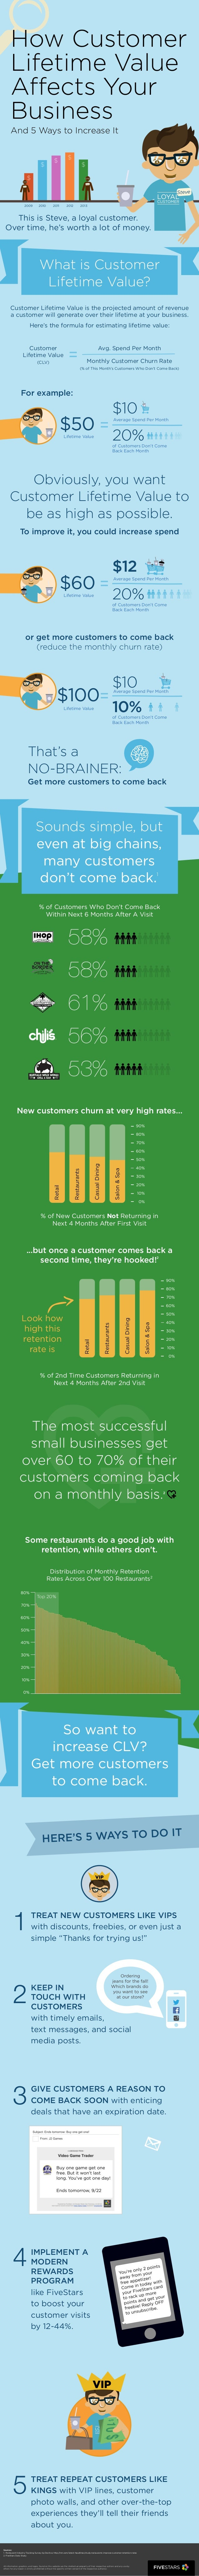 $ $ $ $ $ Steve Steve And 5 Ways to Increase It What is Customer Lifetime Value? Obviously, you want Customer Lifetime Val...